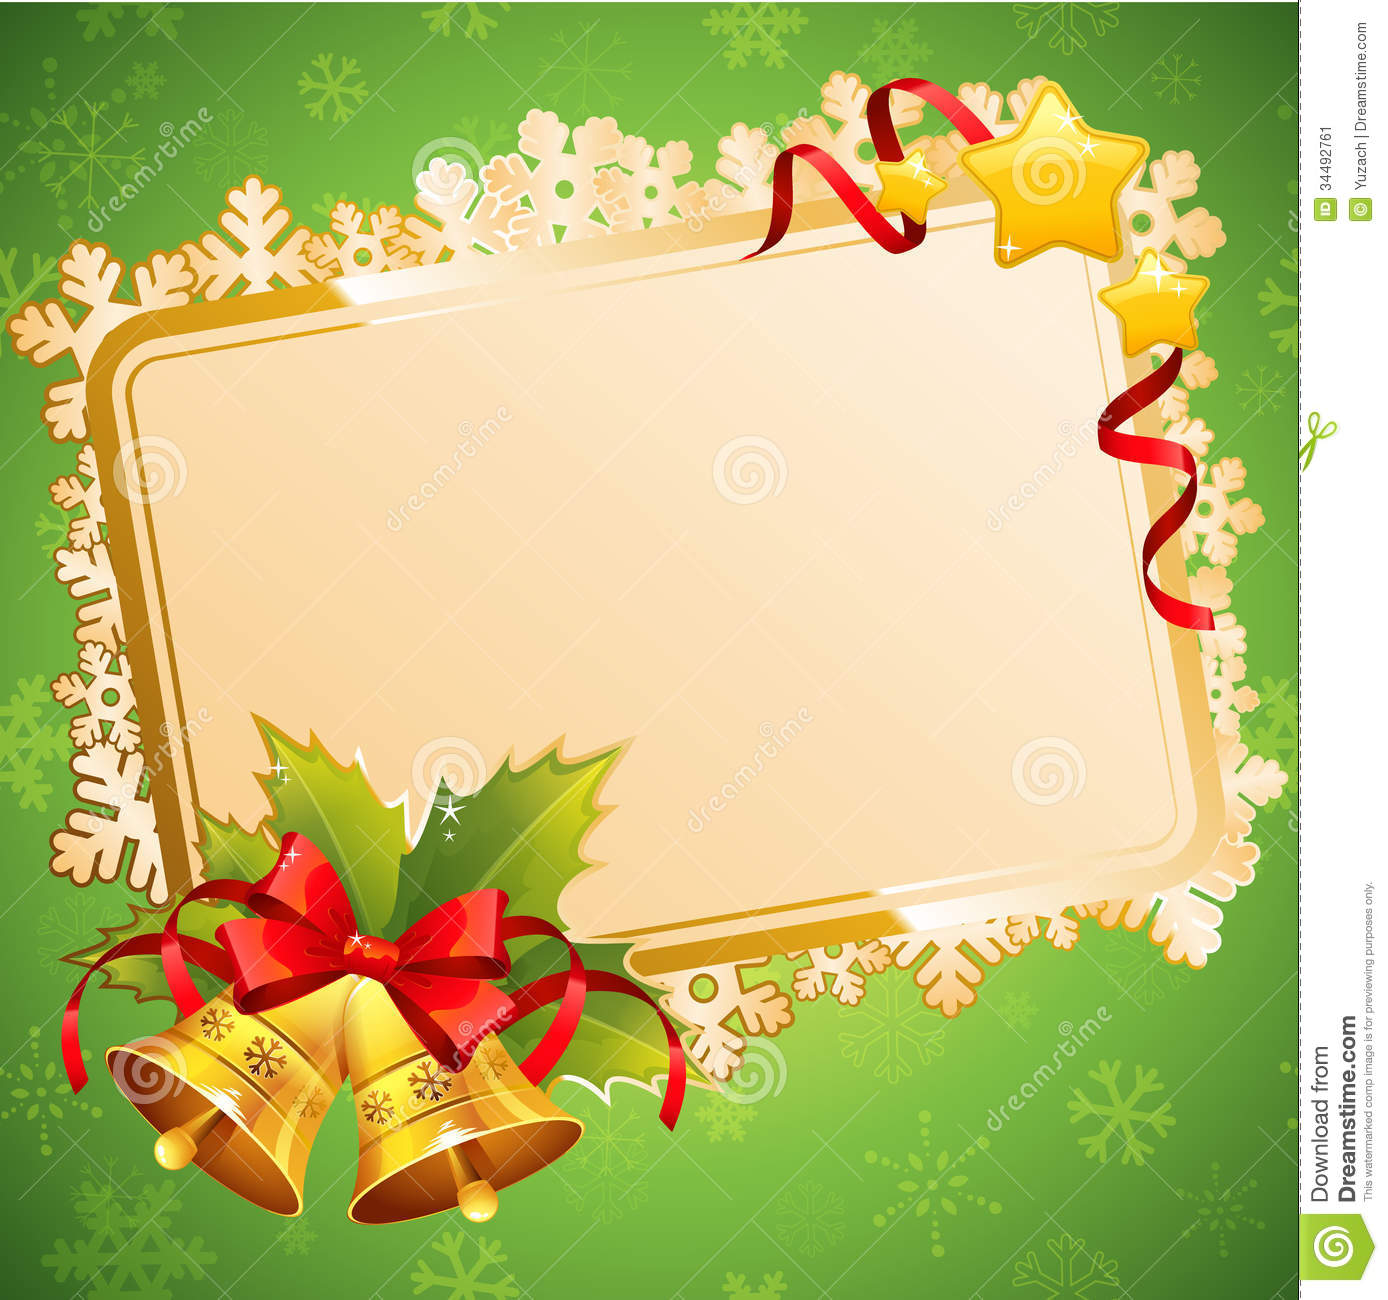 suggestions online images of christmas invitation backgrounds decorative christmas invitation postcard traditional winter stock